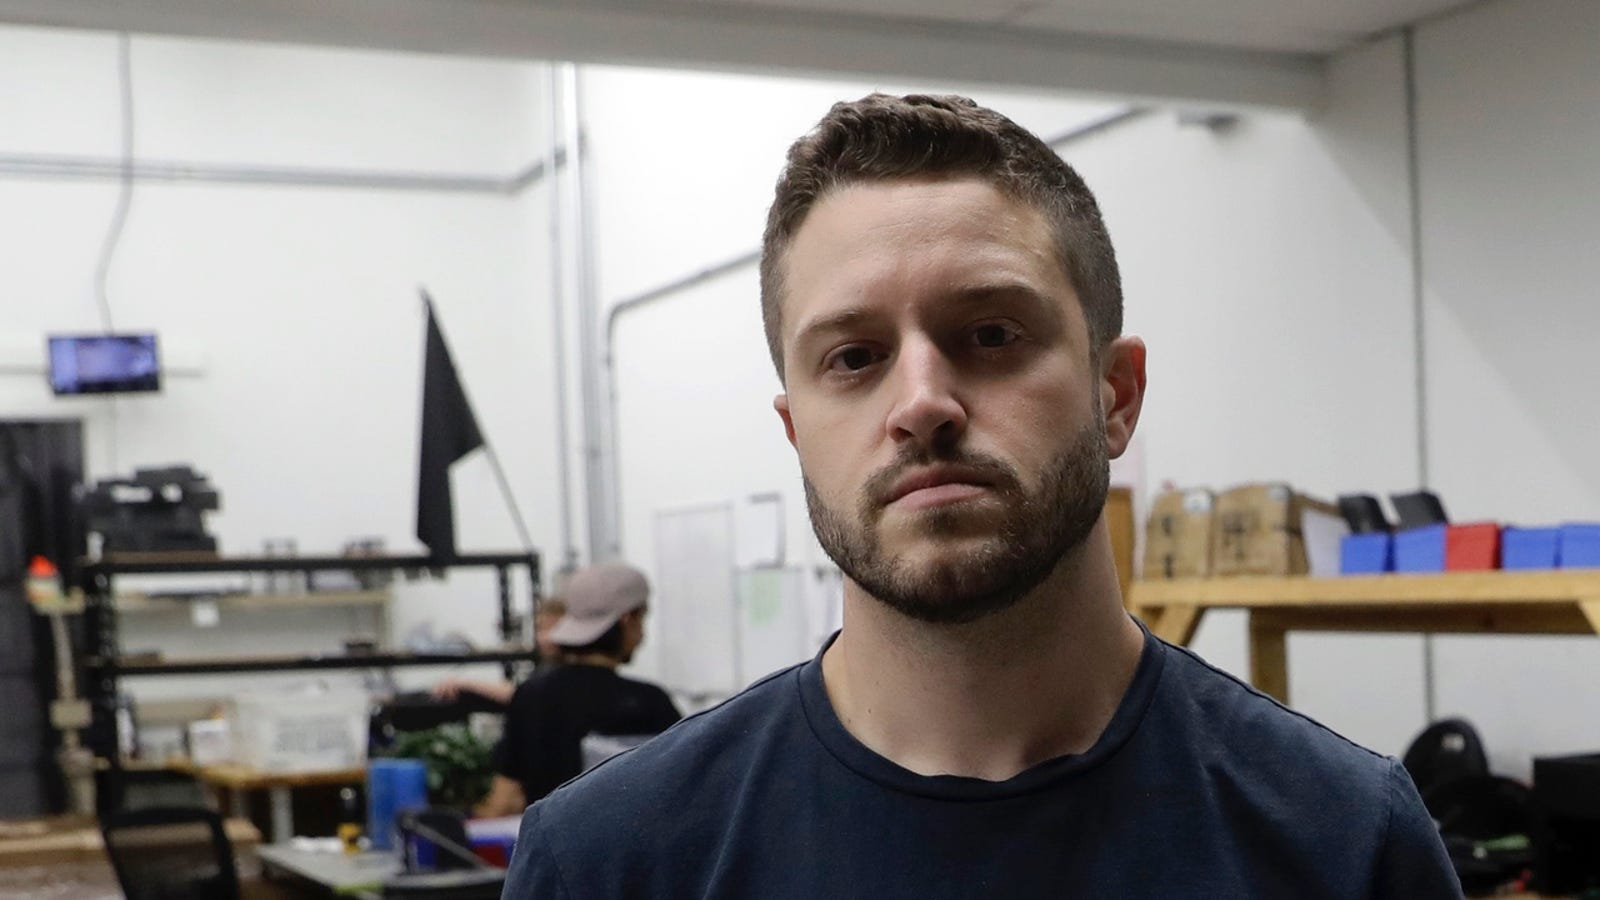 3D-Printed Gun Activist Cody Wilson Charged With Sexual Assault of a Child